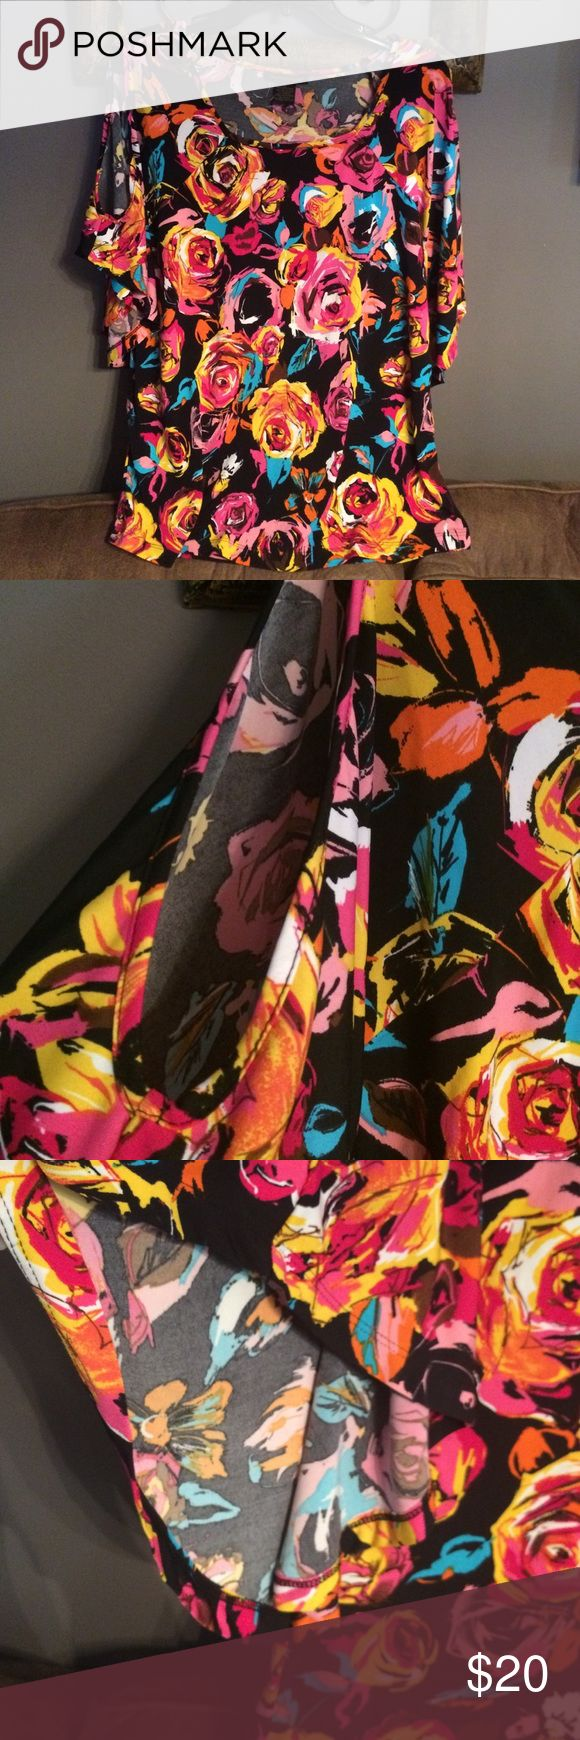 Susan Lawrence floral blouse This gorgeous blouse has batwing cold shoulder sleeves and a scoop neck. Soft and stretchy material so it's very comfortable! Oh and machine washable too!! EXCELLENT used condition! Susan Lawrence Tops Blouses